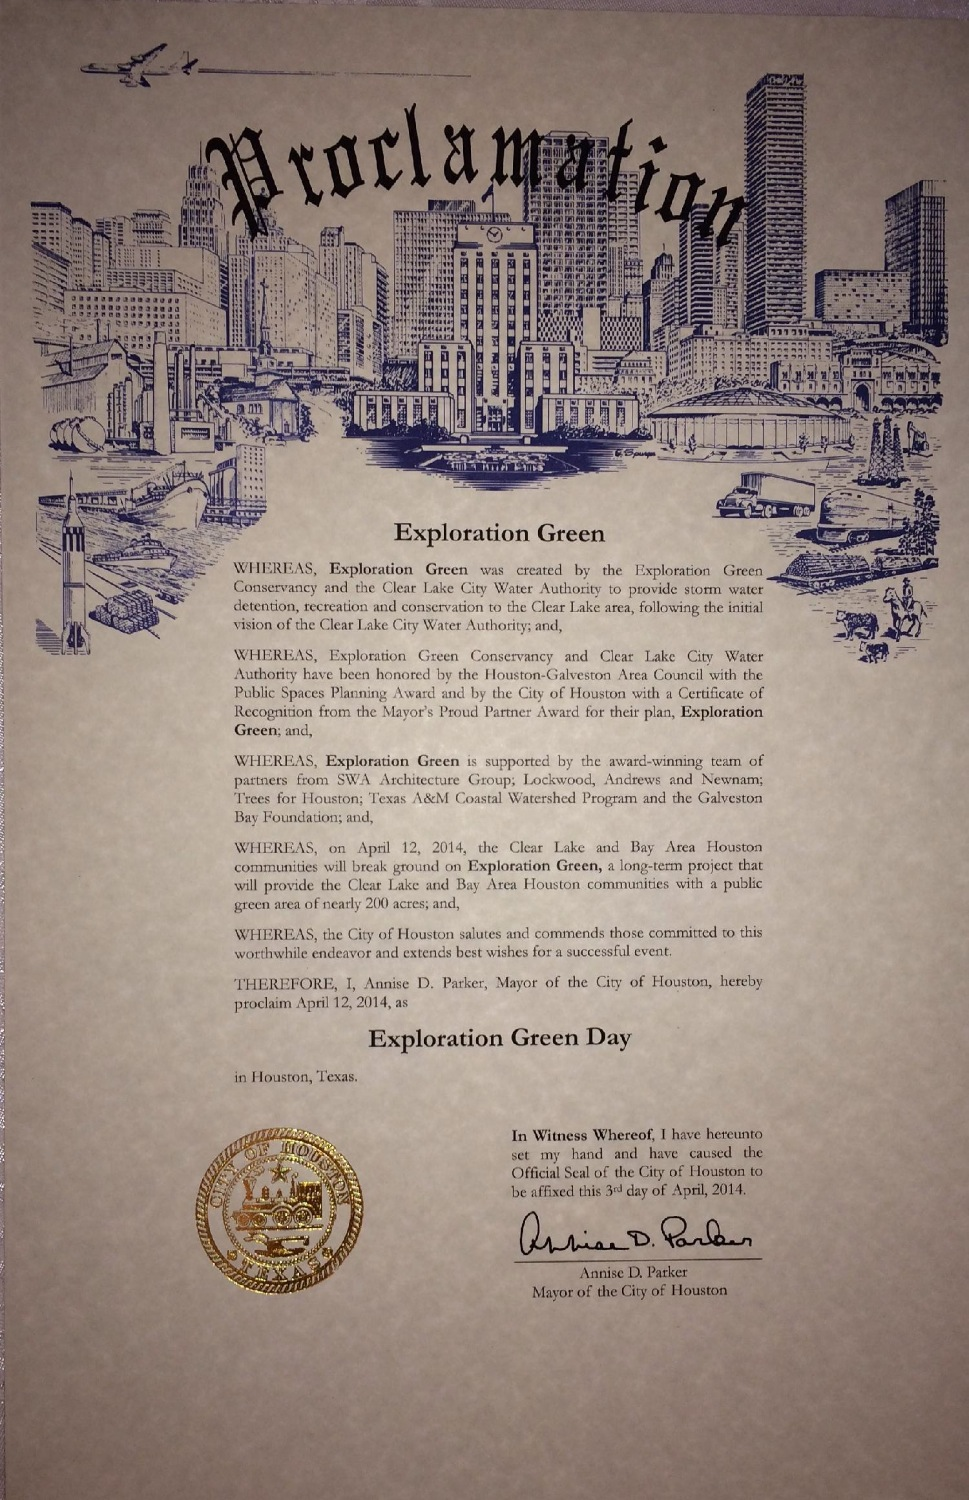 Proclamation from the City